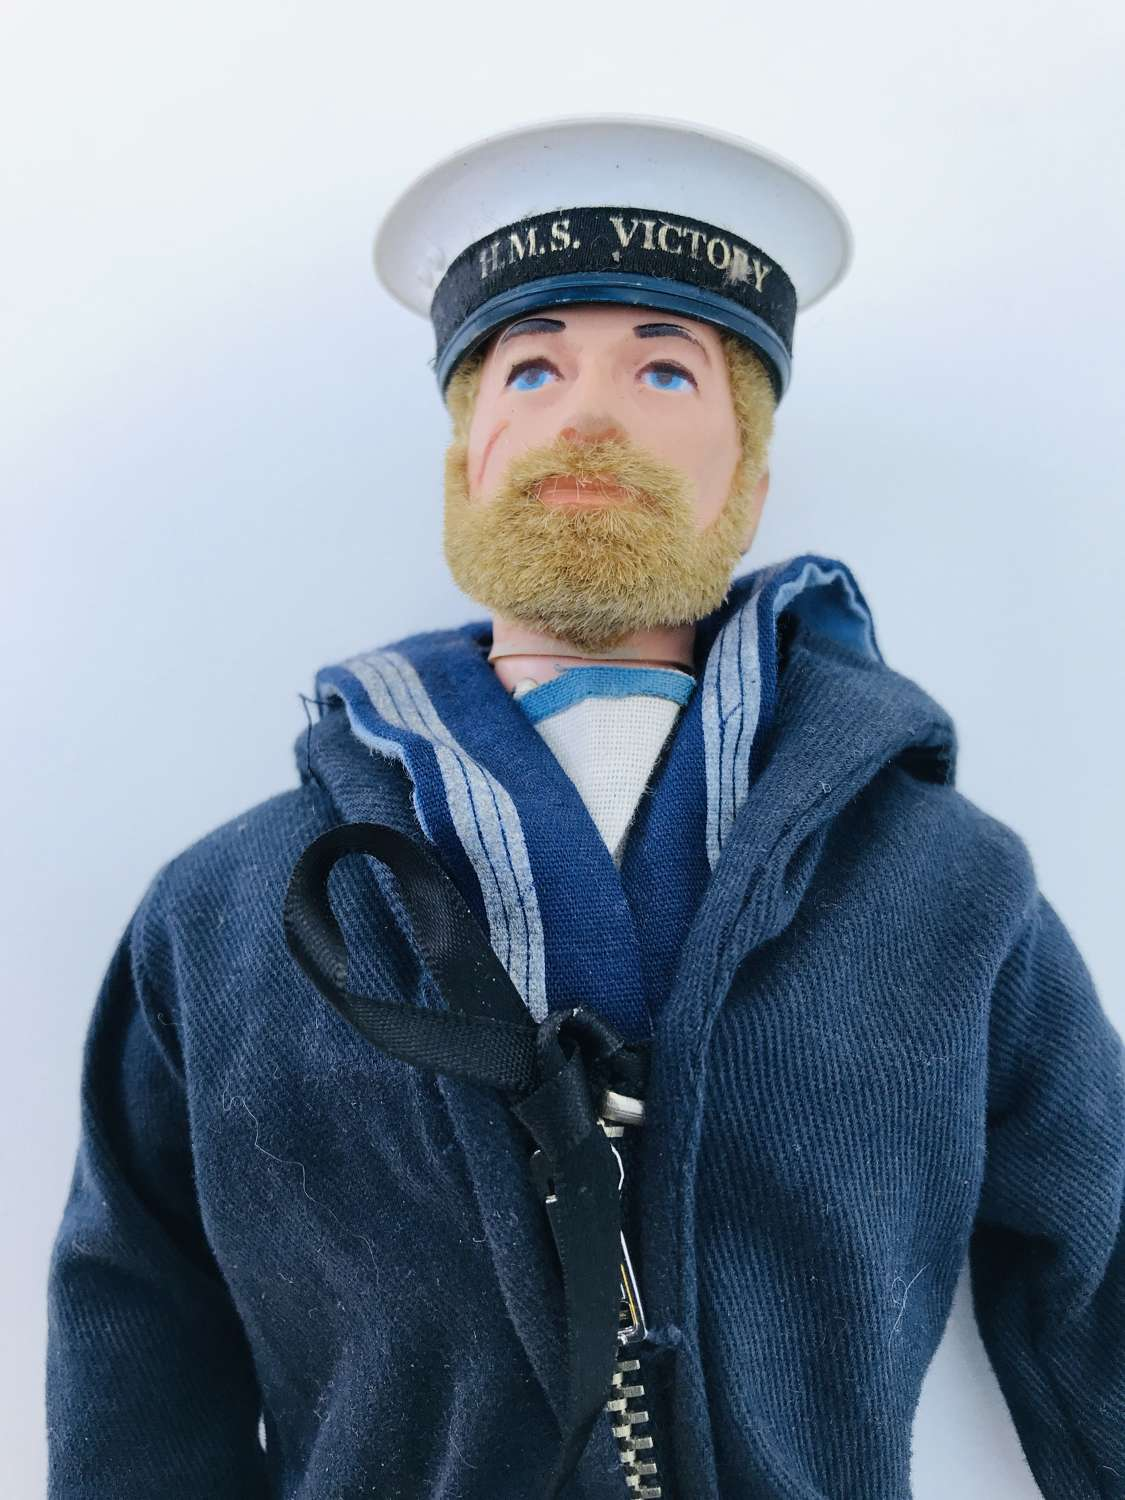 Action man HMS victory